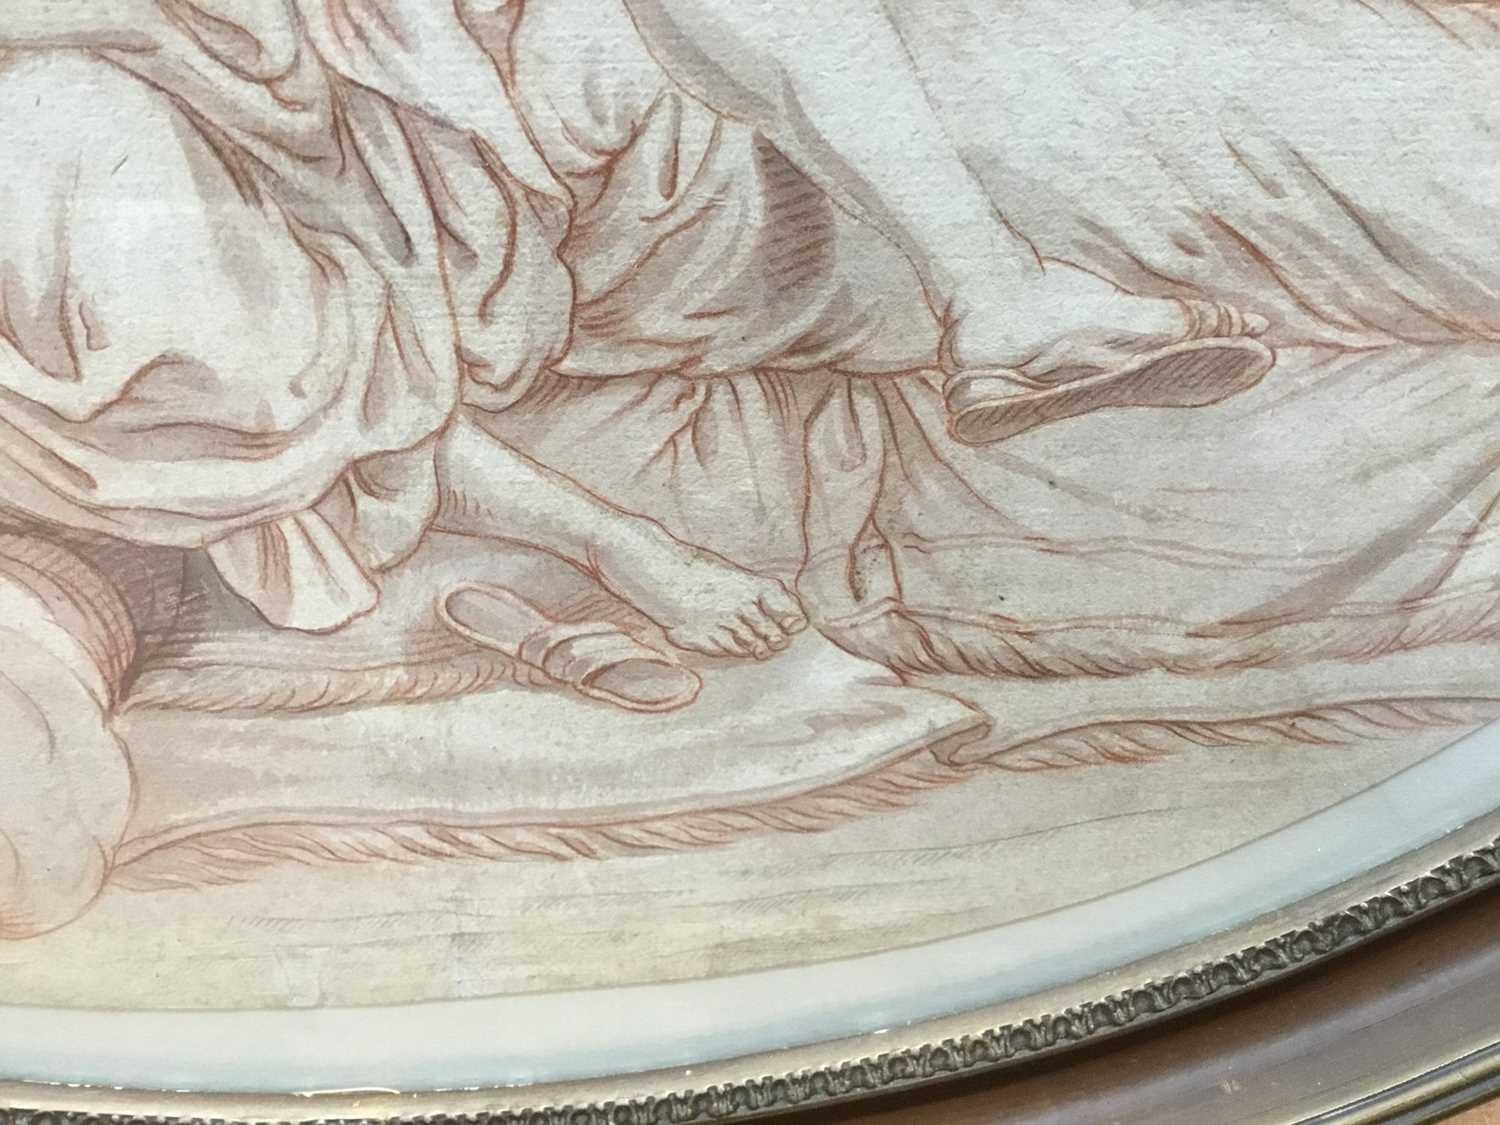 AN 18TH CENTURY ITALIAN SCHOOL PENCIL, PEN AND INK WITH WHITE BODY COLOUR ON OVAL OFF WHITE HANDMADE - Image 3 of 4